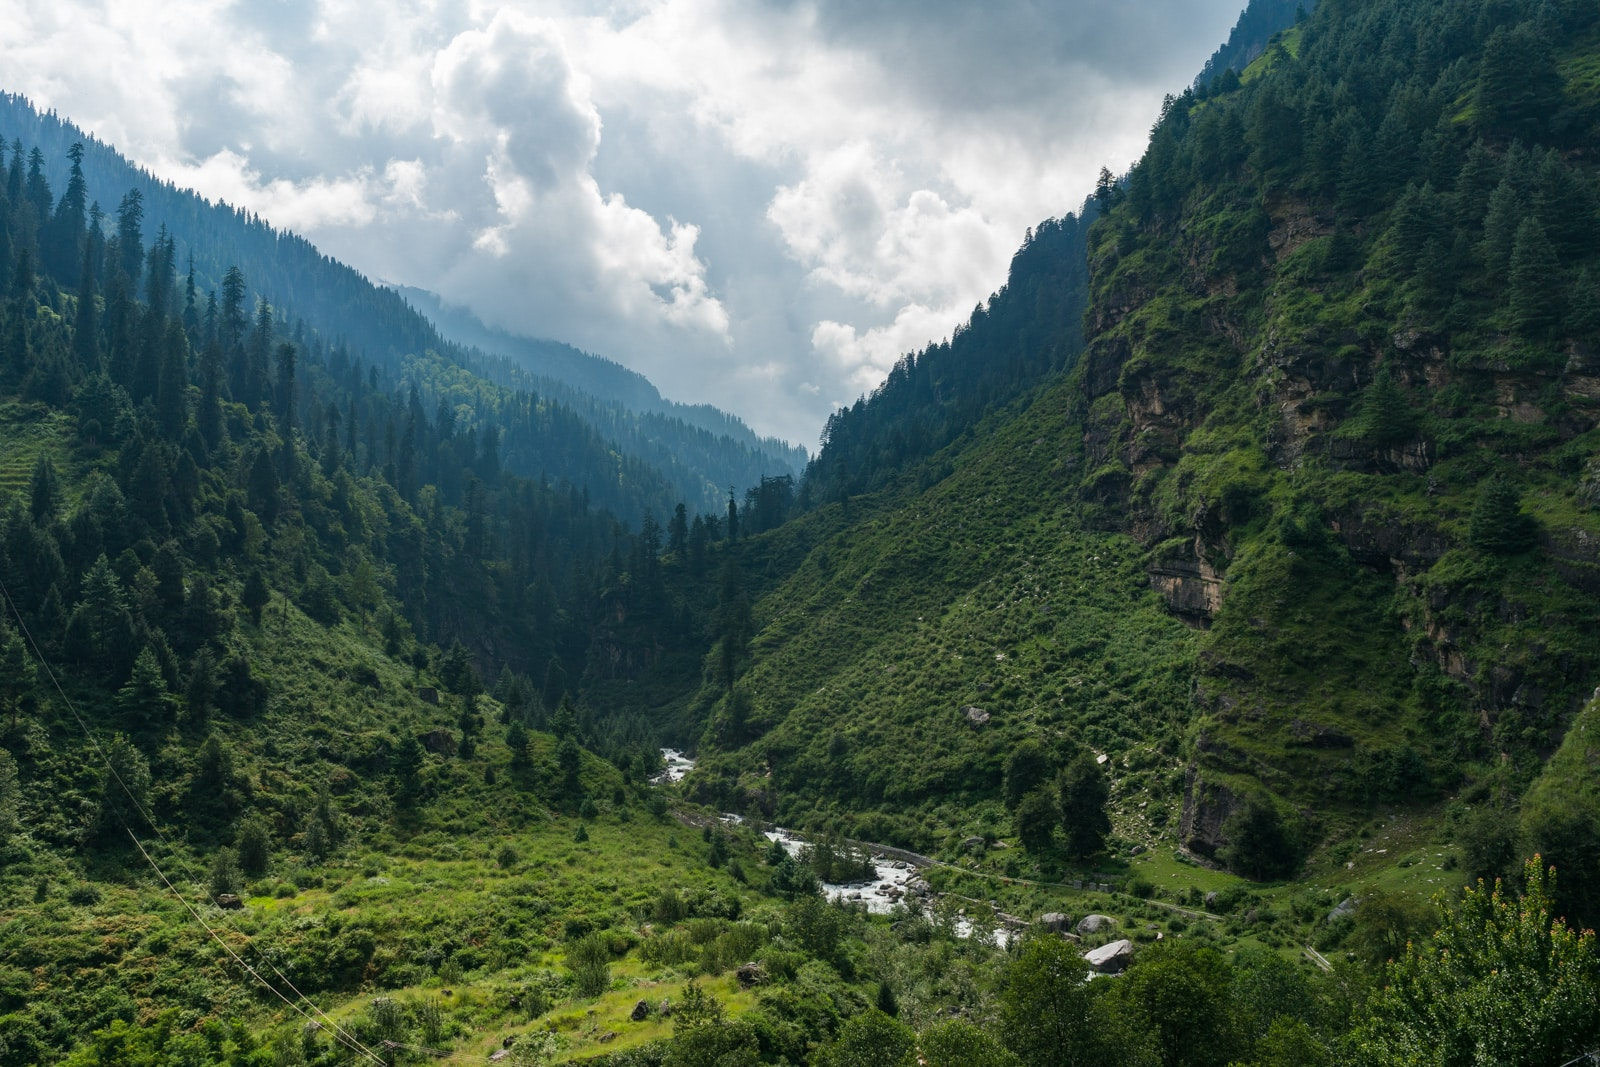 Green forested mountains with a small river running down a valley near Manali in Himachal Pradesh, India